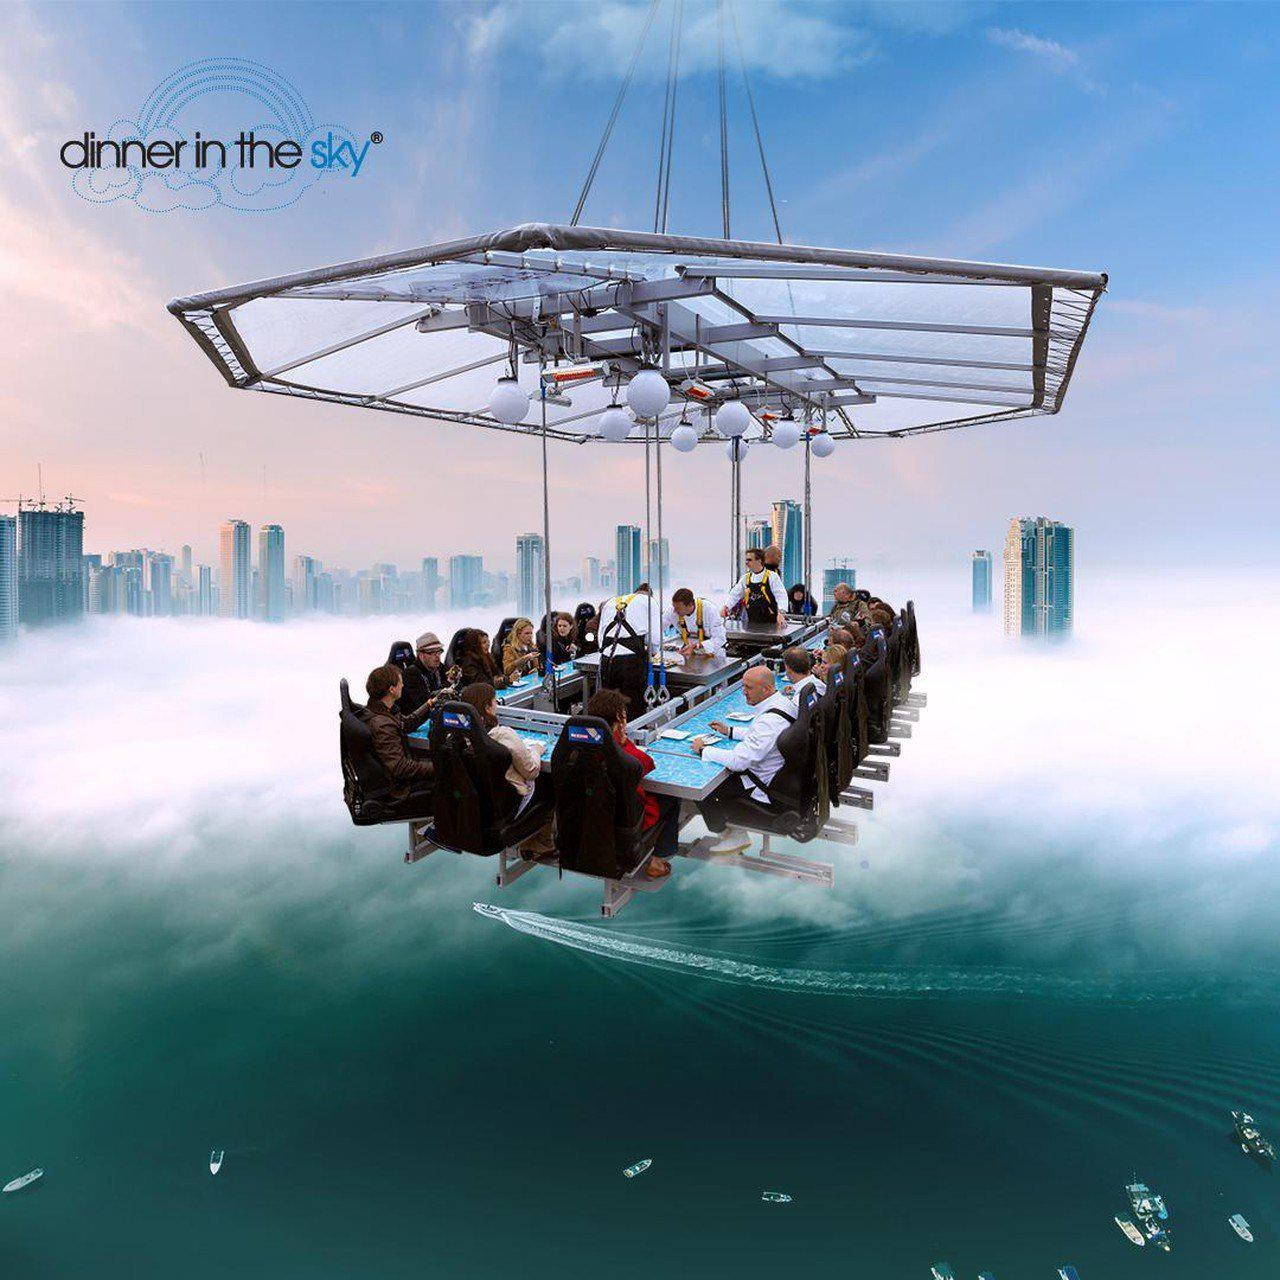 Dresden corporate event venues Unusual Dinner in the sky image 0